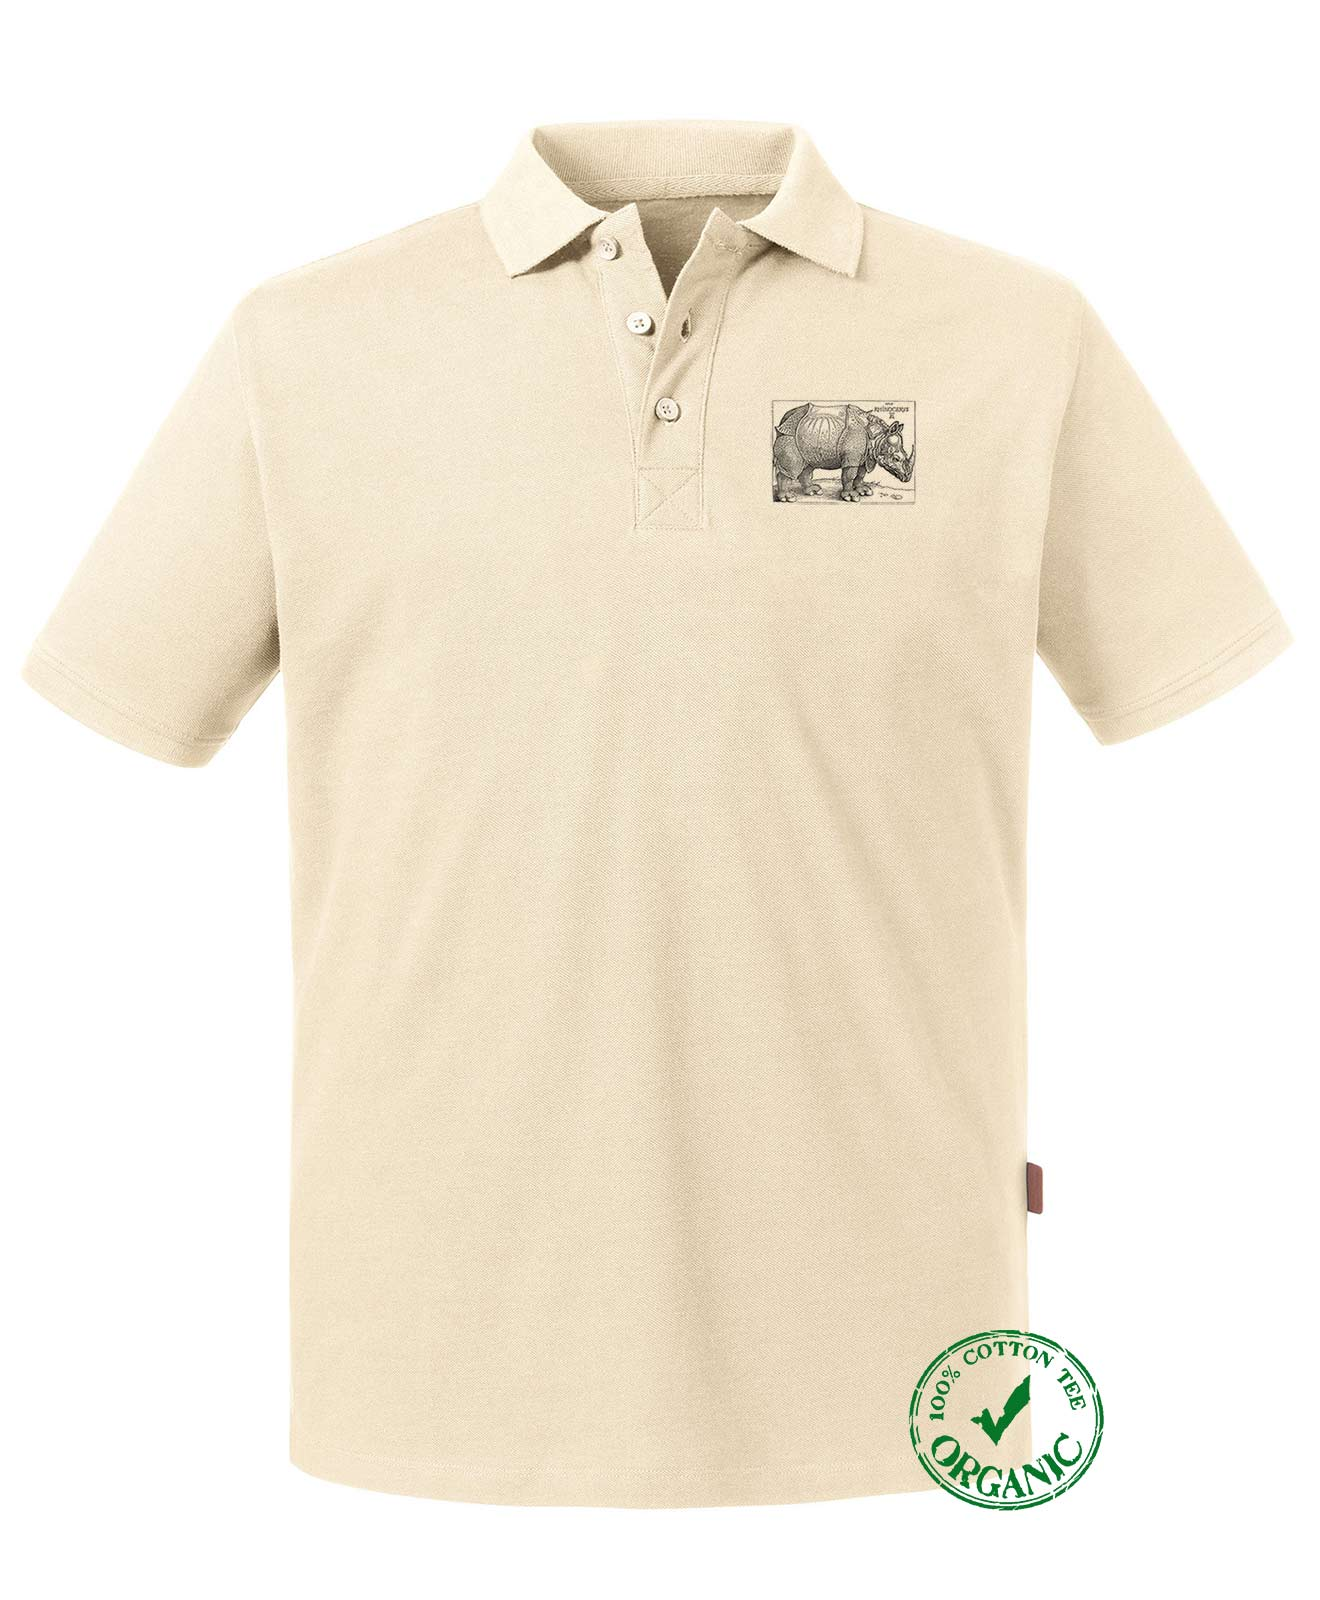 Rhinocerus Organic Polo Shirt